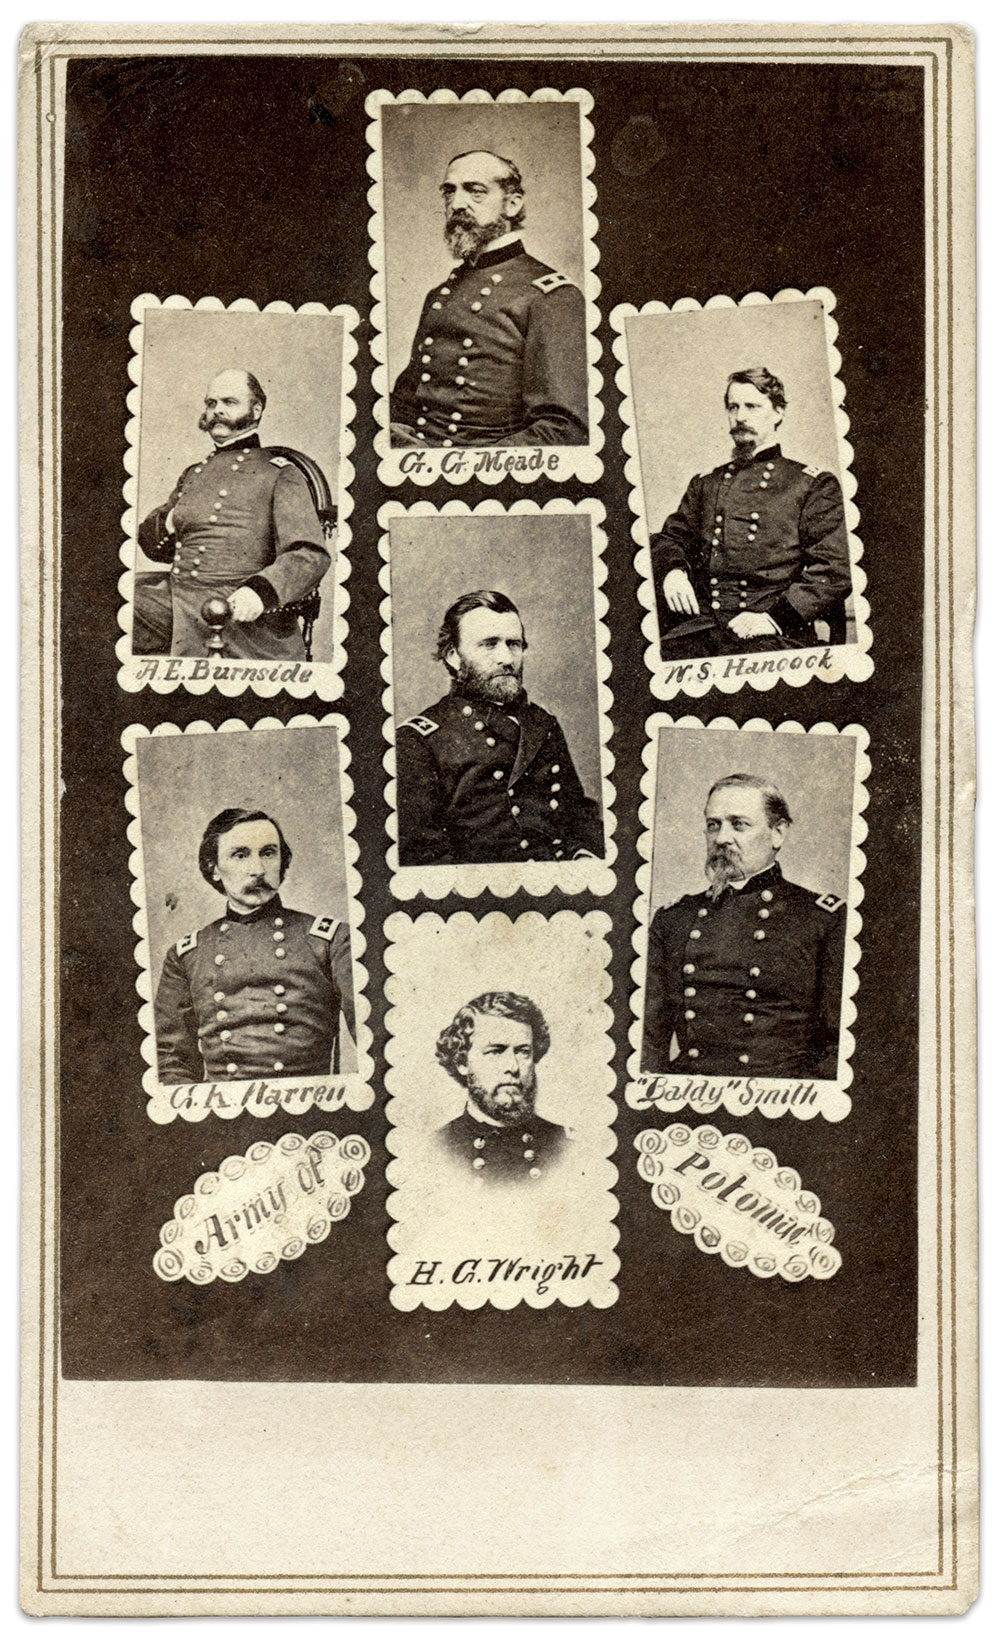 """ARMY OF THE POTOMAC: Ulysses S. Grant sits at the center of """"Army of the Potomac."""" Grant did not command this army directly—that honor belonged to the officer pictured above him, Maj. Gen. George G. Meade. But Grant's presence dates this montage to early 1864, when President Lincoln named him lieutenant general and overall commander of Union forces. Grant attached himself to Meade's army. Other clues to dating this image include Grant's rank (he is pictured wearing the two stars of a major general rather than three of a lieutenant general) and the presence of Maj. Gen. William """"Baldy"""" Smith, who was removed as a corps commander in July 1864."""